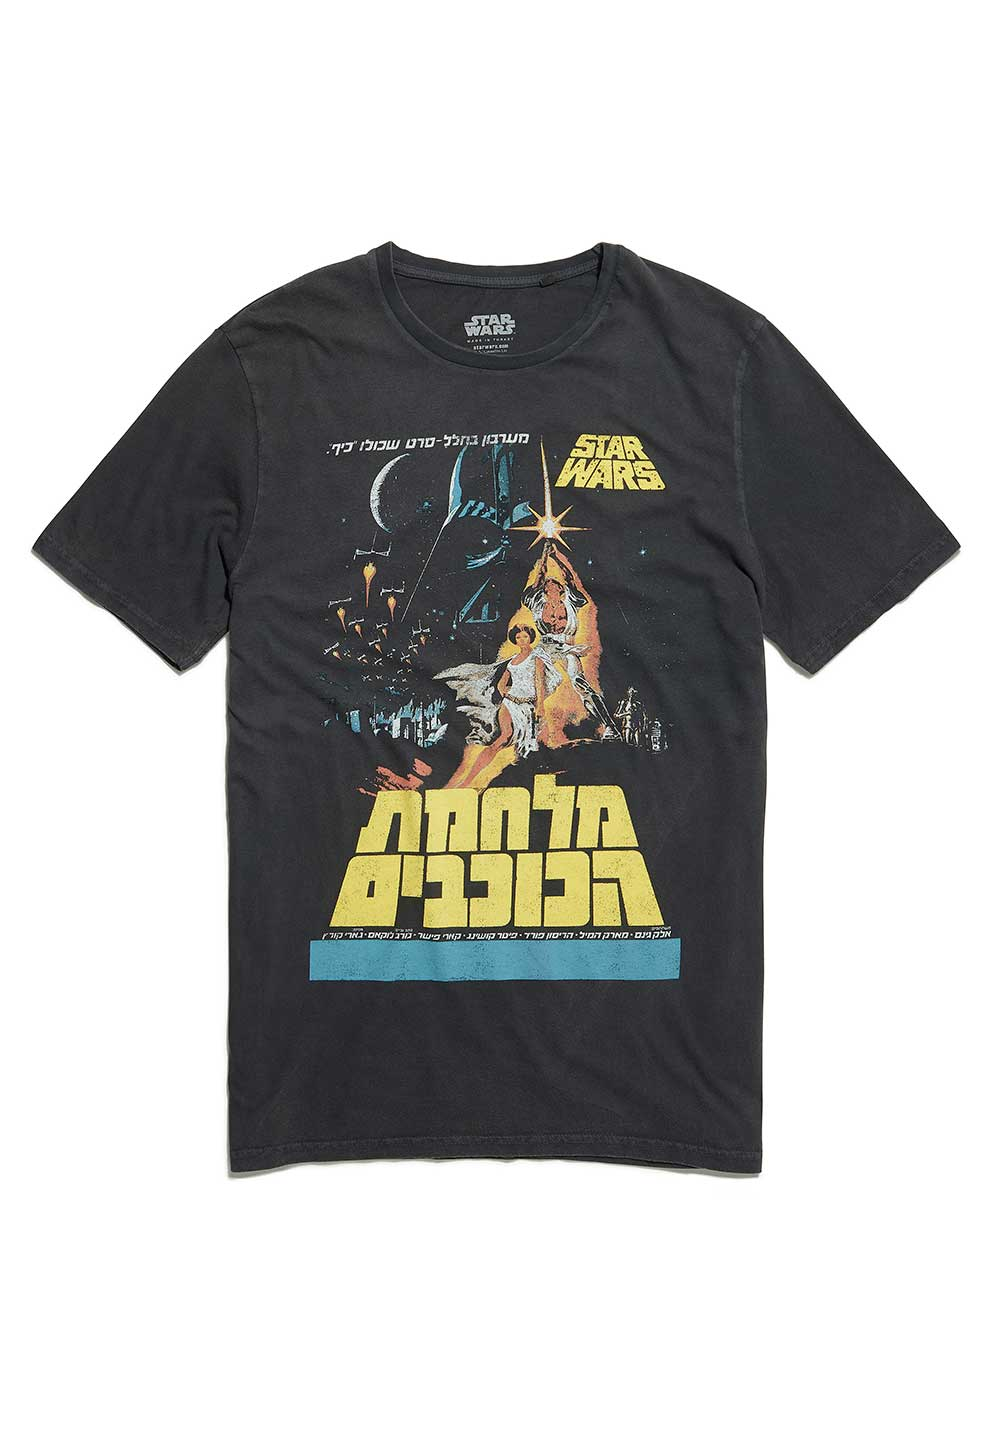 Recovered Vintage Star Wars International Poster Black/Charcoal Acid Wash T-Shirt